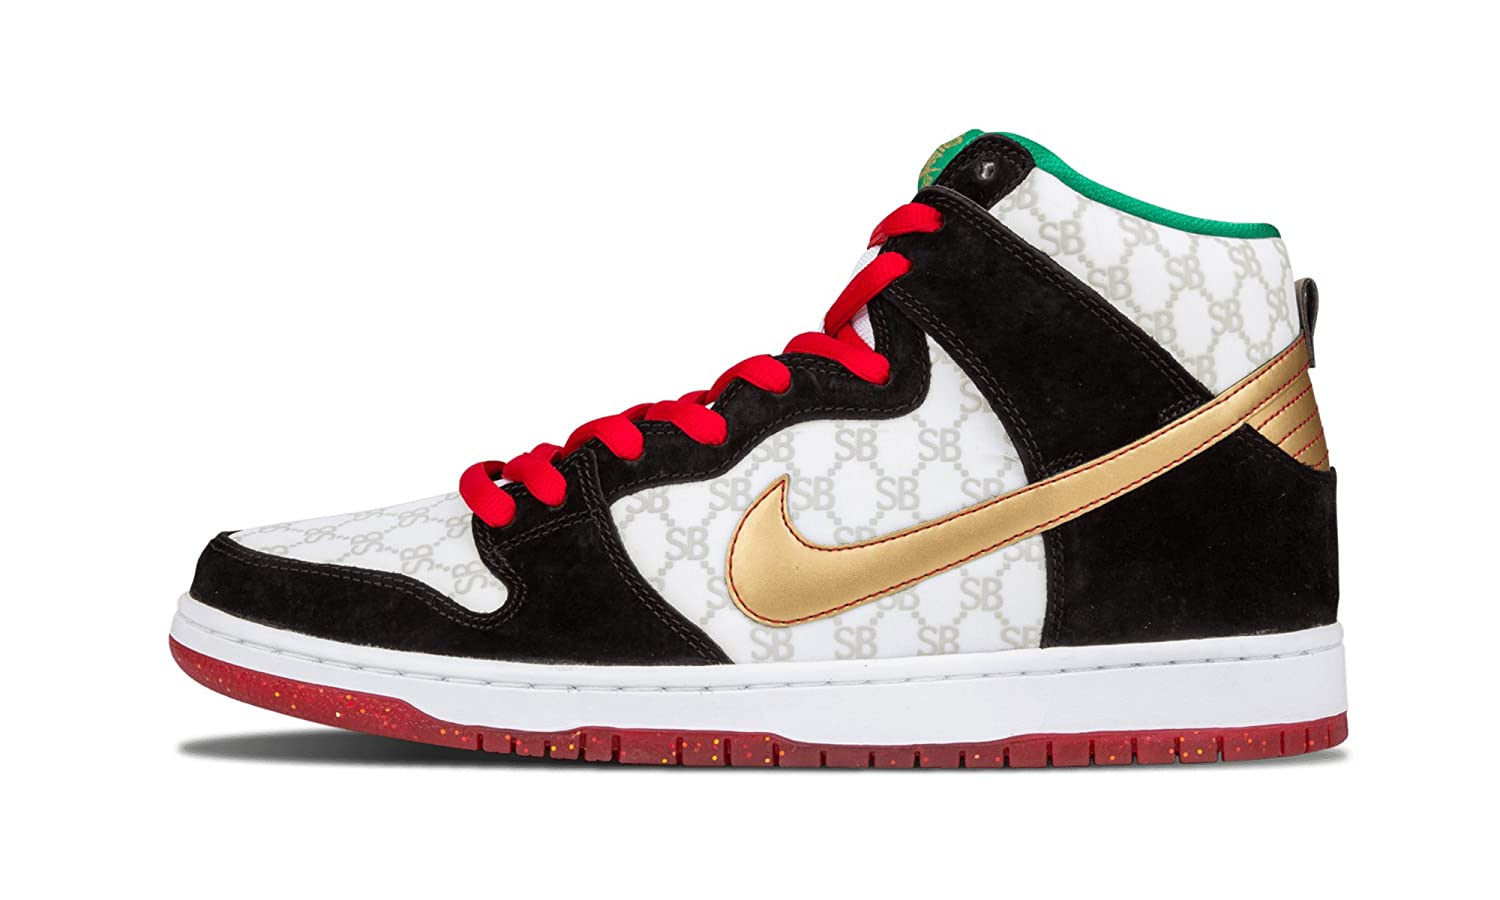 [NIKE - ナイキ] DUNK HIGH SB 'BLACK SHEEP PAID IN FULL' - 313171-170 - SIZE 10.5 (メンズ) B00M9L99UU